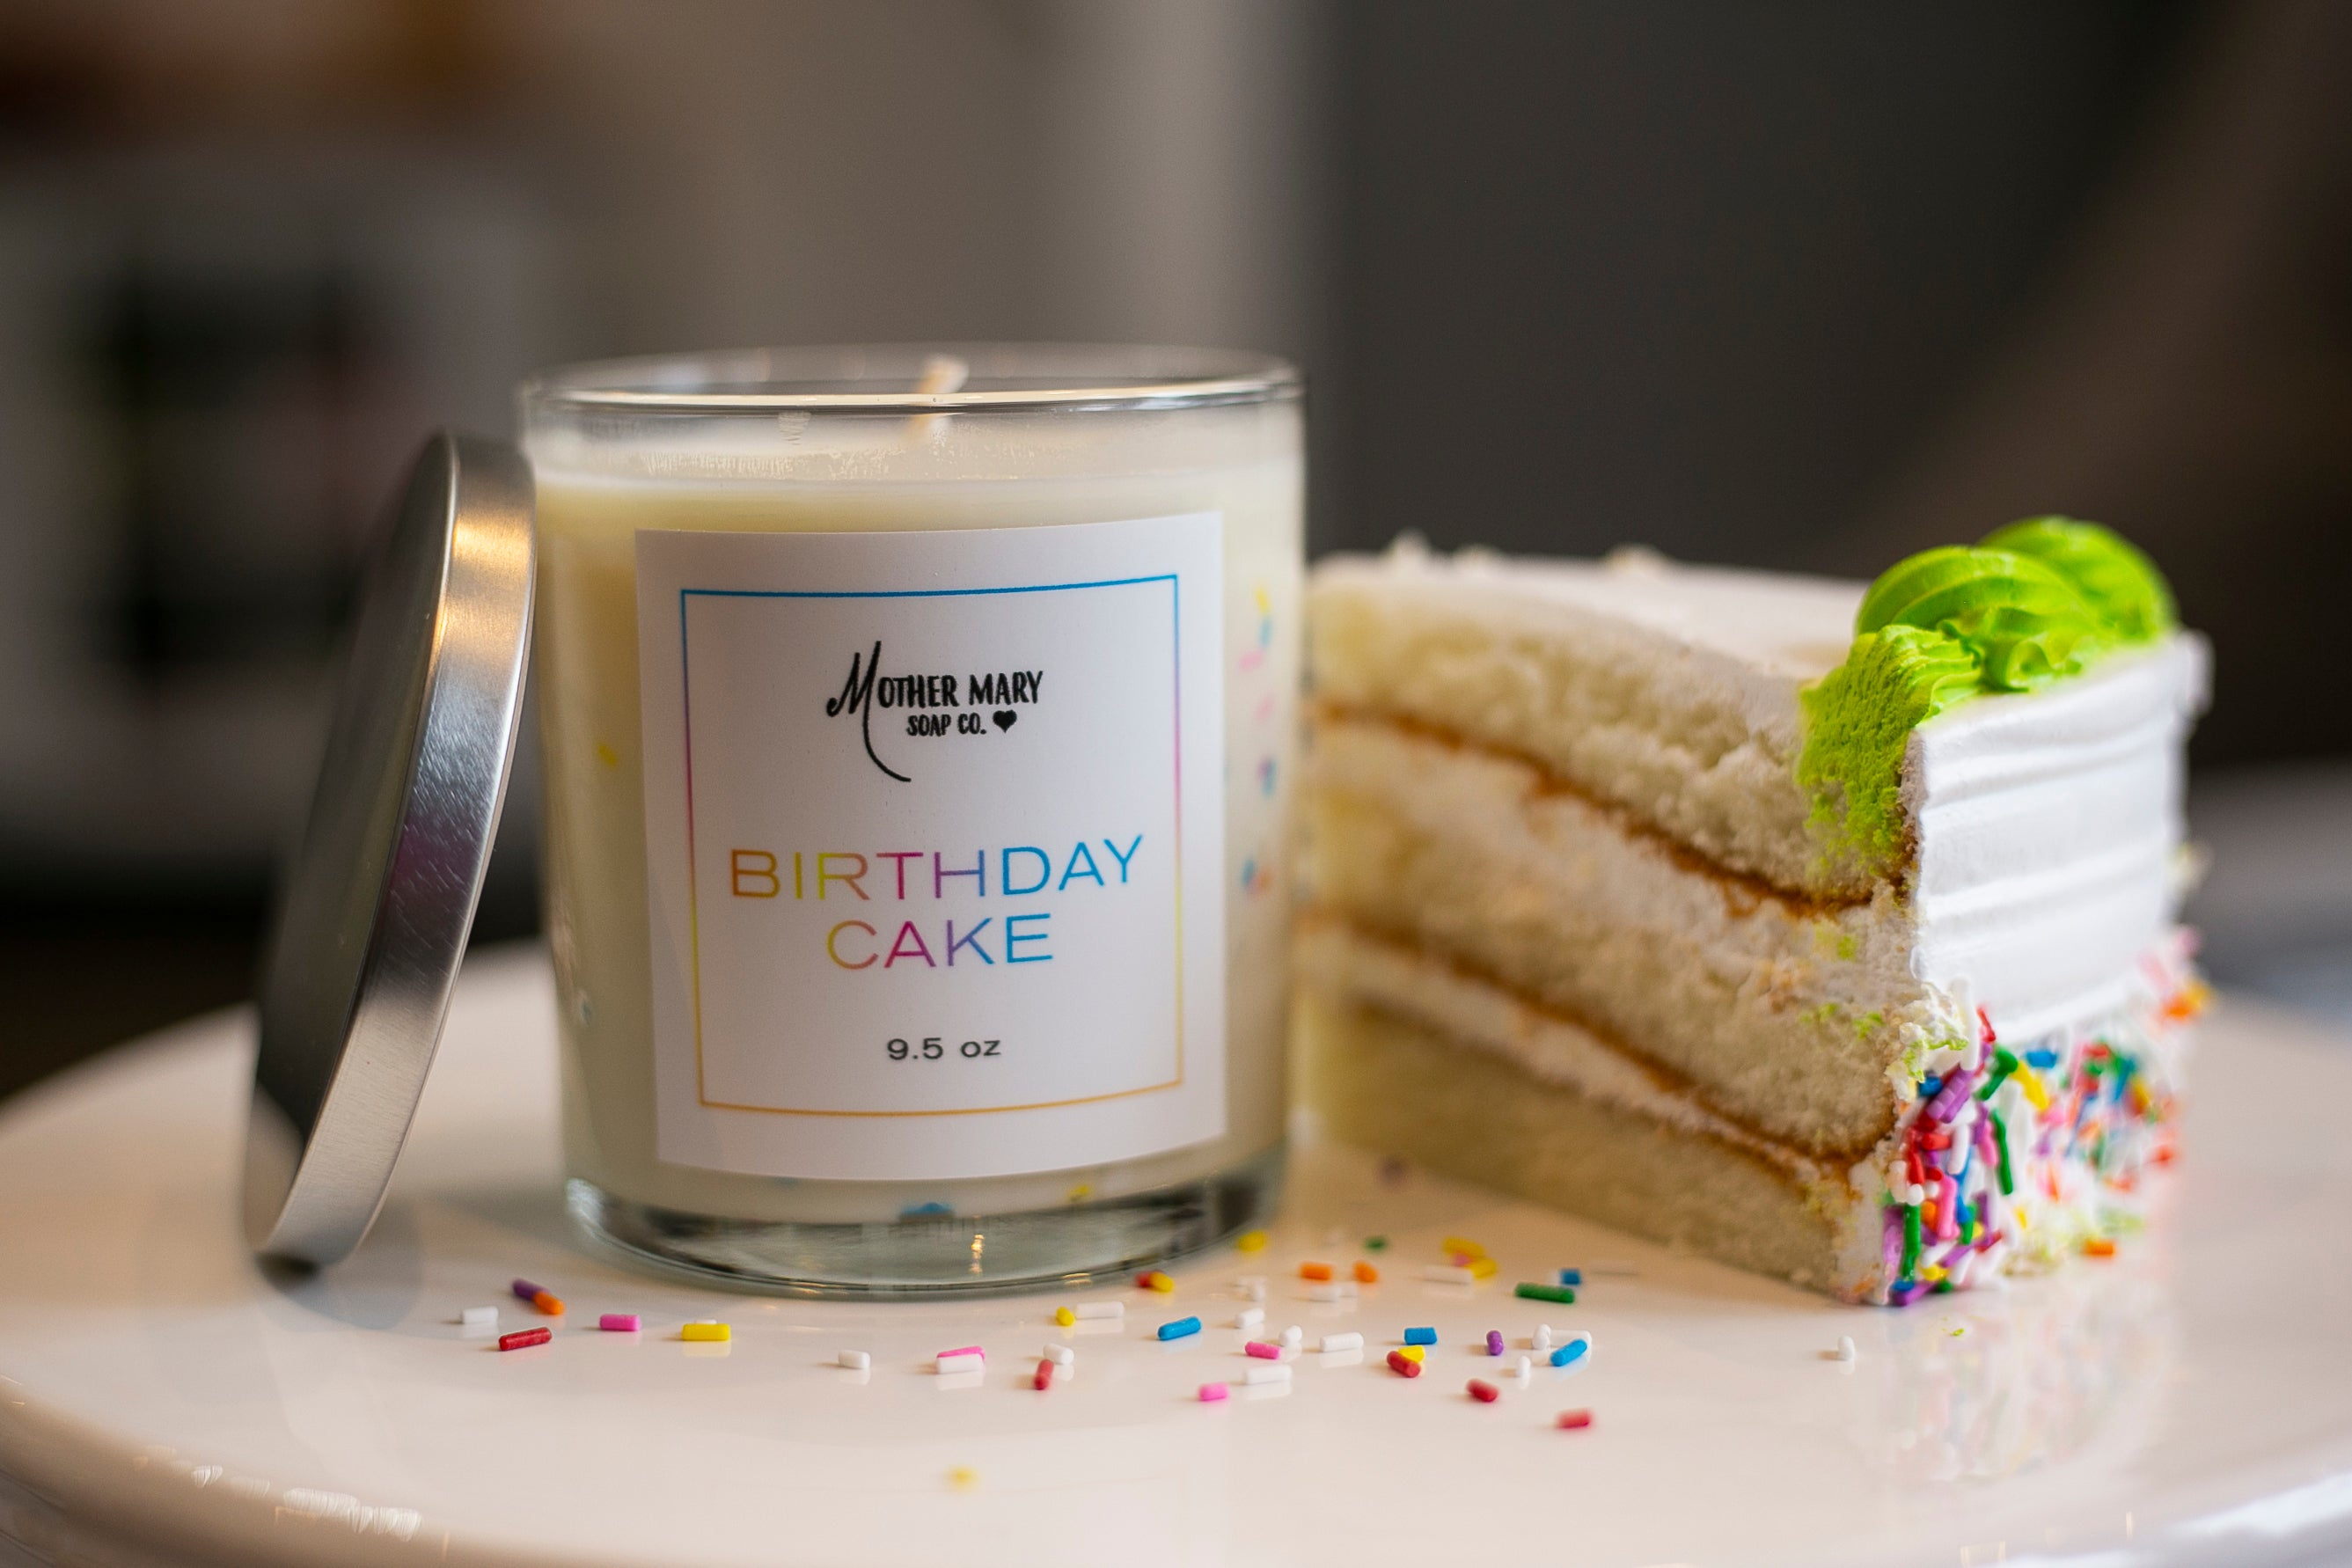 Birthday Cake Candle - Mother Mary Soap Company